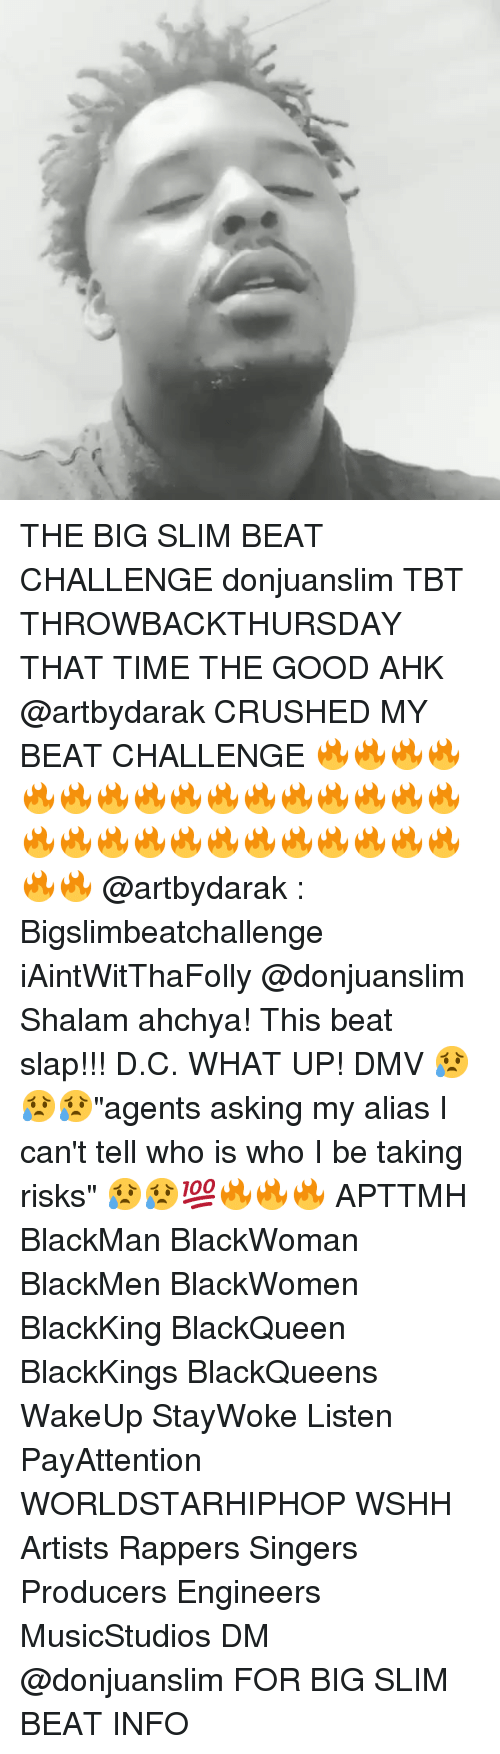 "Dmv, Memes, and Tbt: THE BIG SLIM BEAT CHALLENGE donjuanslim TBT THROWBACKTHURSDAY THAT TIME THE GOOD AHK @artbydarak CRUSHED MY BEAT CHALLENGE 🔥🔥🔥🔥🔥🔥🔥🔥🔥🔥🔥🔥🔥🔥🔥🔥🔥🔥🔥🔥🔥🔥🔥🔥🔥🔥🔥🔥🔥🔥 @artbydarak : Bigslimbeatchallenge iAintWitThaFolly @donjuanslim Shalam ahchya! This beat slap!!! D.C. WHAT UP! DMV 😥😥😥""agents asking my alias I can't tell who is who I be taking risks"" 😥😥💯🔥🔥🔥 APTTMH BlackMan BlackWoman BlackMen BlackWomen BlackKing BlackQueen BlackKings BlackQueens WakeUp StayWoke Listen PayAttention WORLDSTARHIPHOP WSHH Artists Rappers Singers Producers Engineers MusicStudios DM @donjuanslim FOR BIG SLIM BEAT INFO"